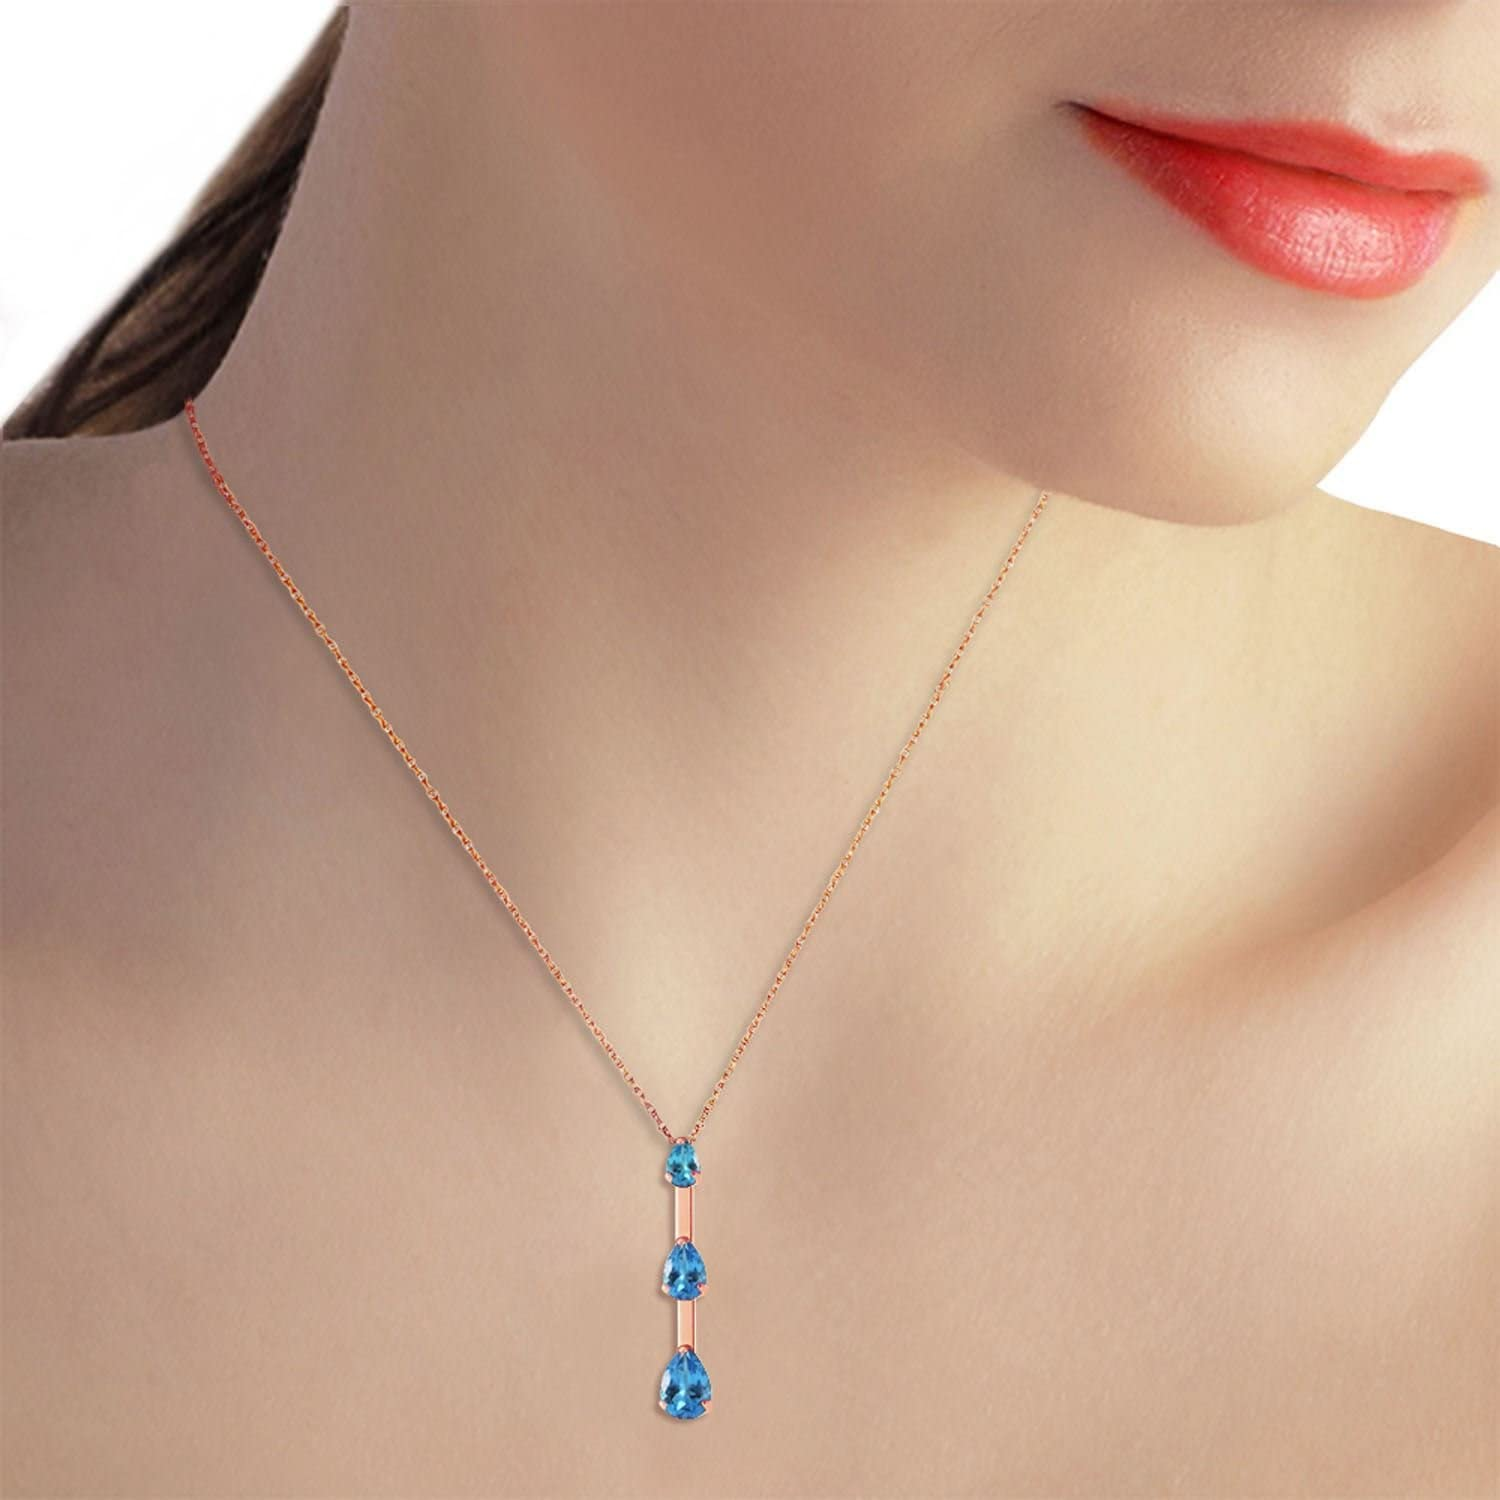 ALARRI 14K Solid Rose Gold Necklace w// Natural Blue Topaz with 24 Inch Chain Length